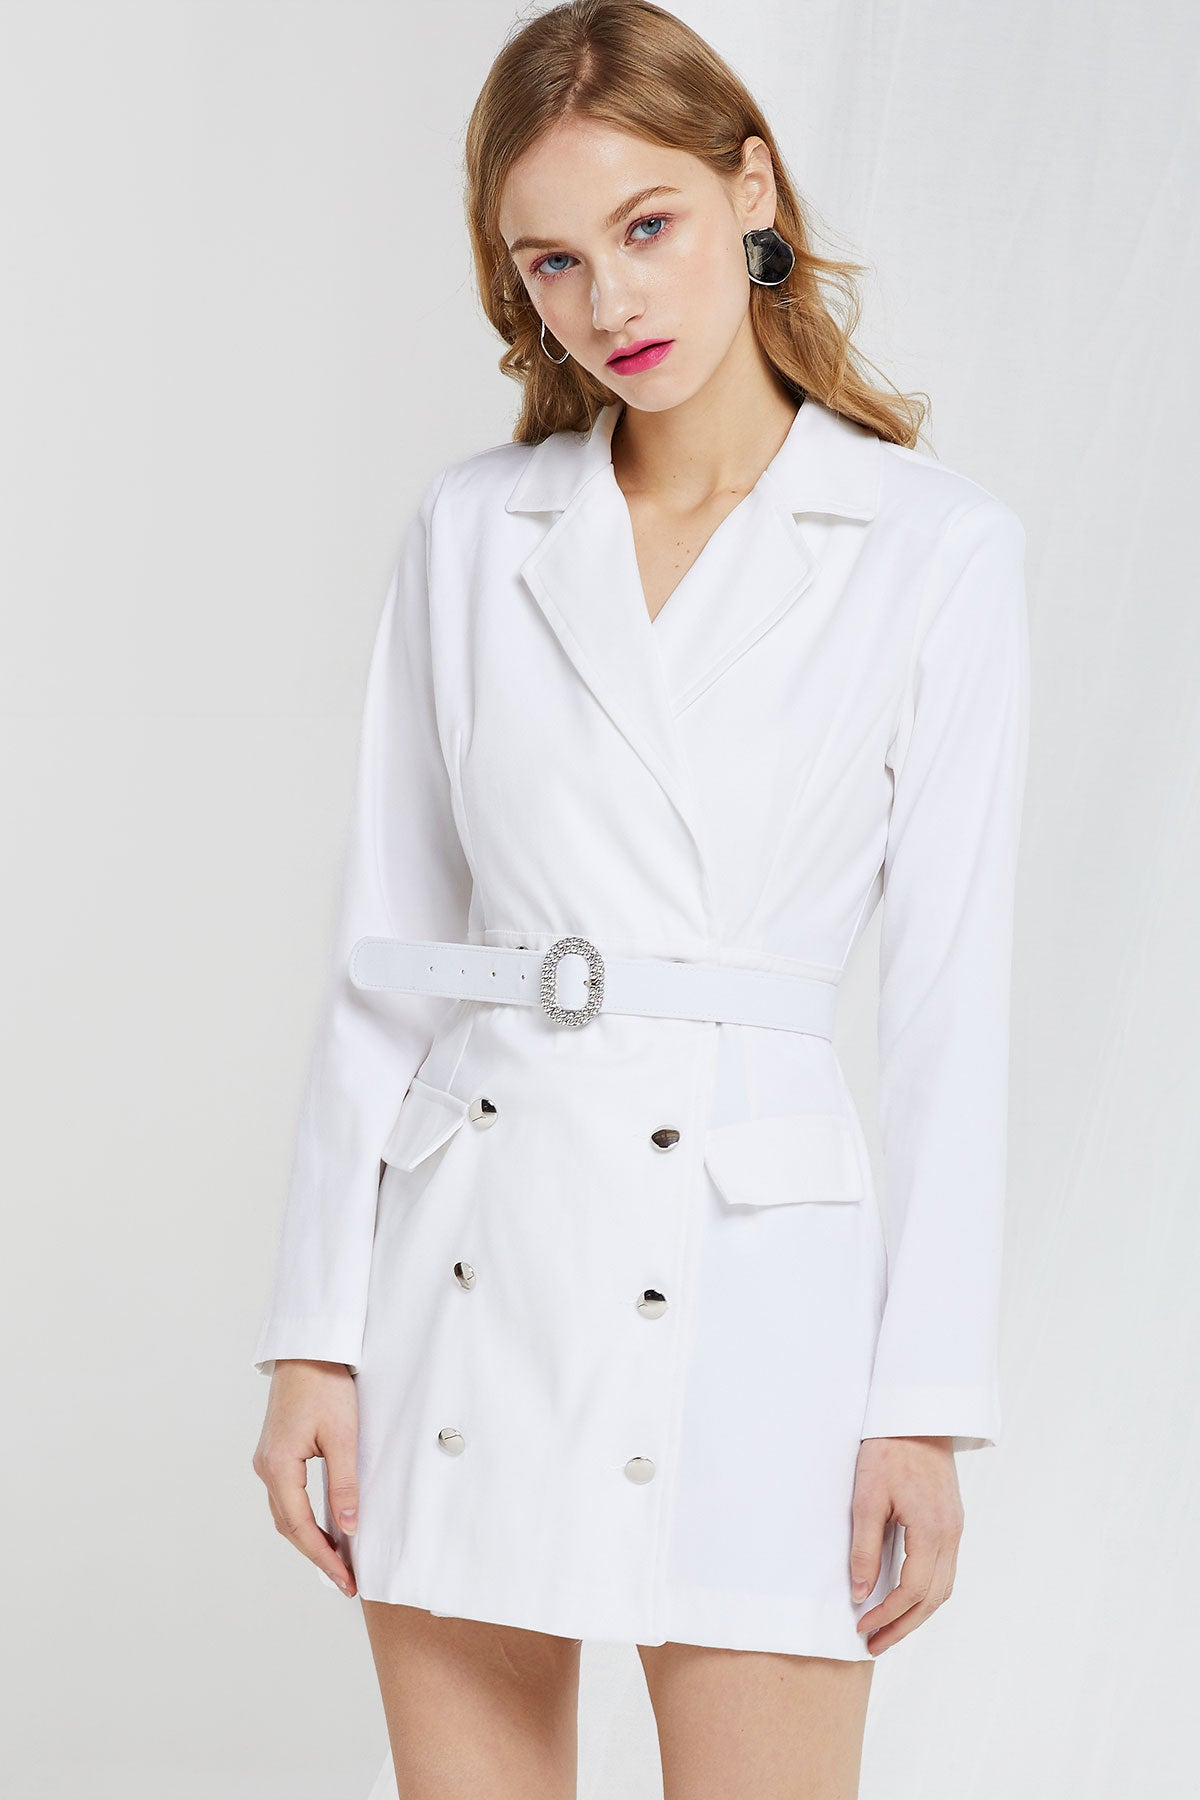 Delores Double Breasted Jacket Dress w/ Belt